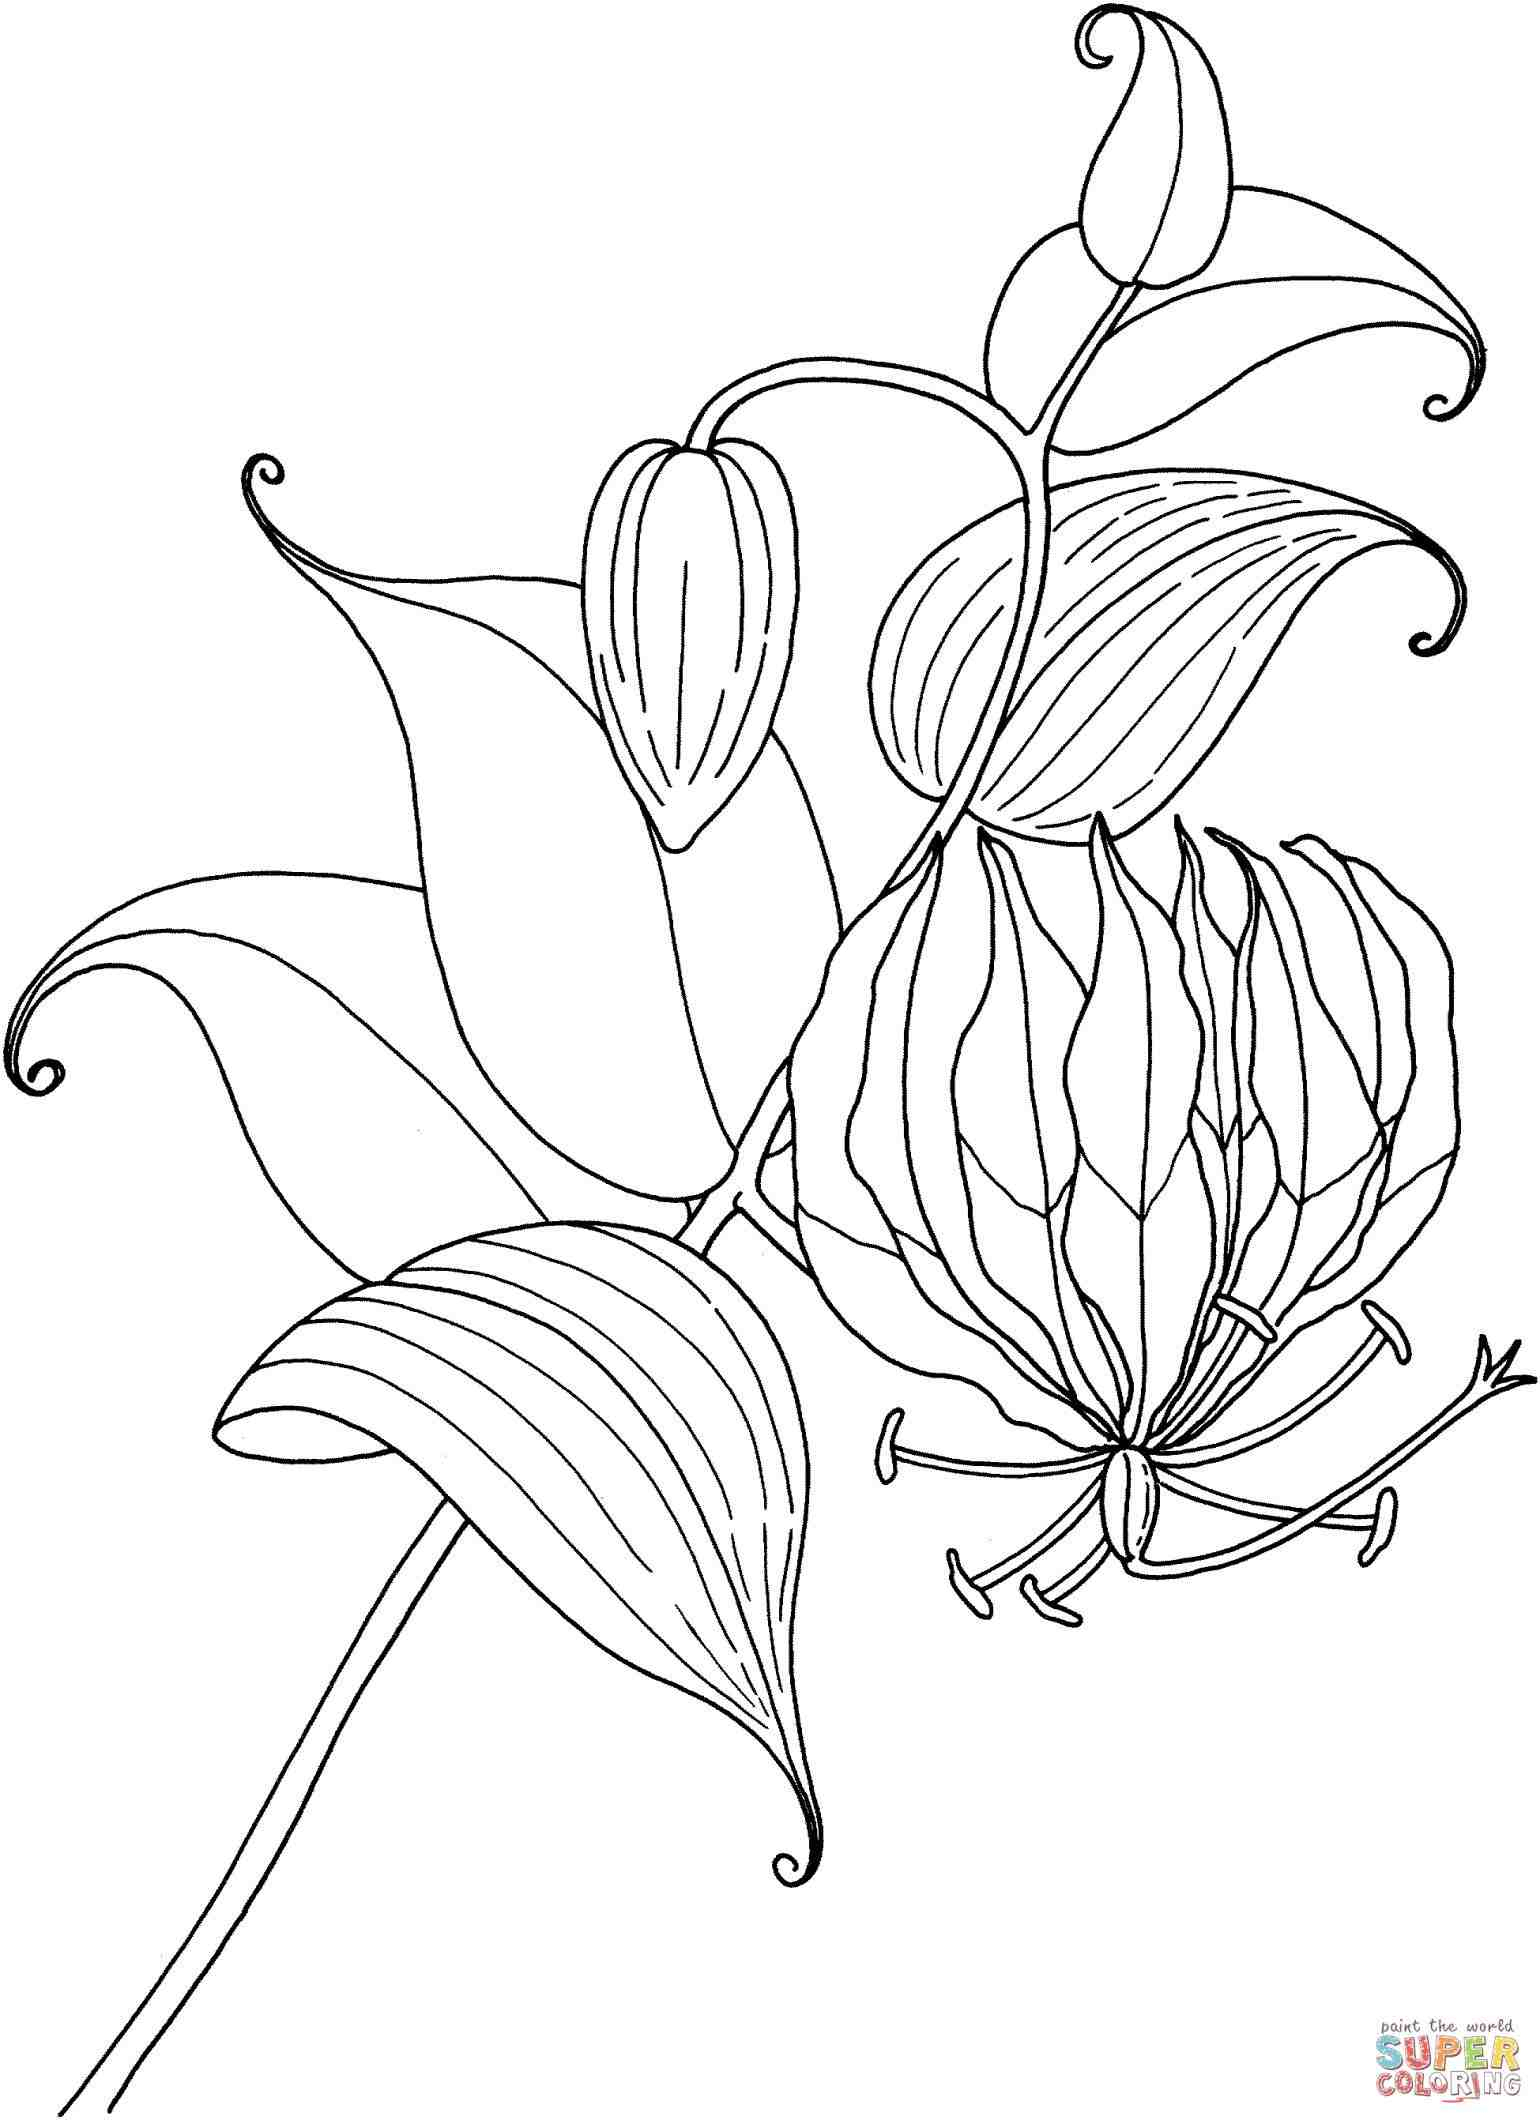 drawings of calla lilies calla lily flower drawing at getdrawings free download of lilies calla drawings